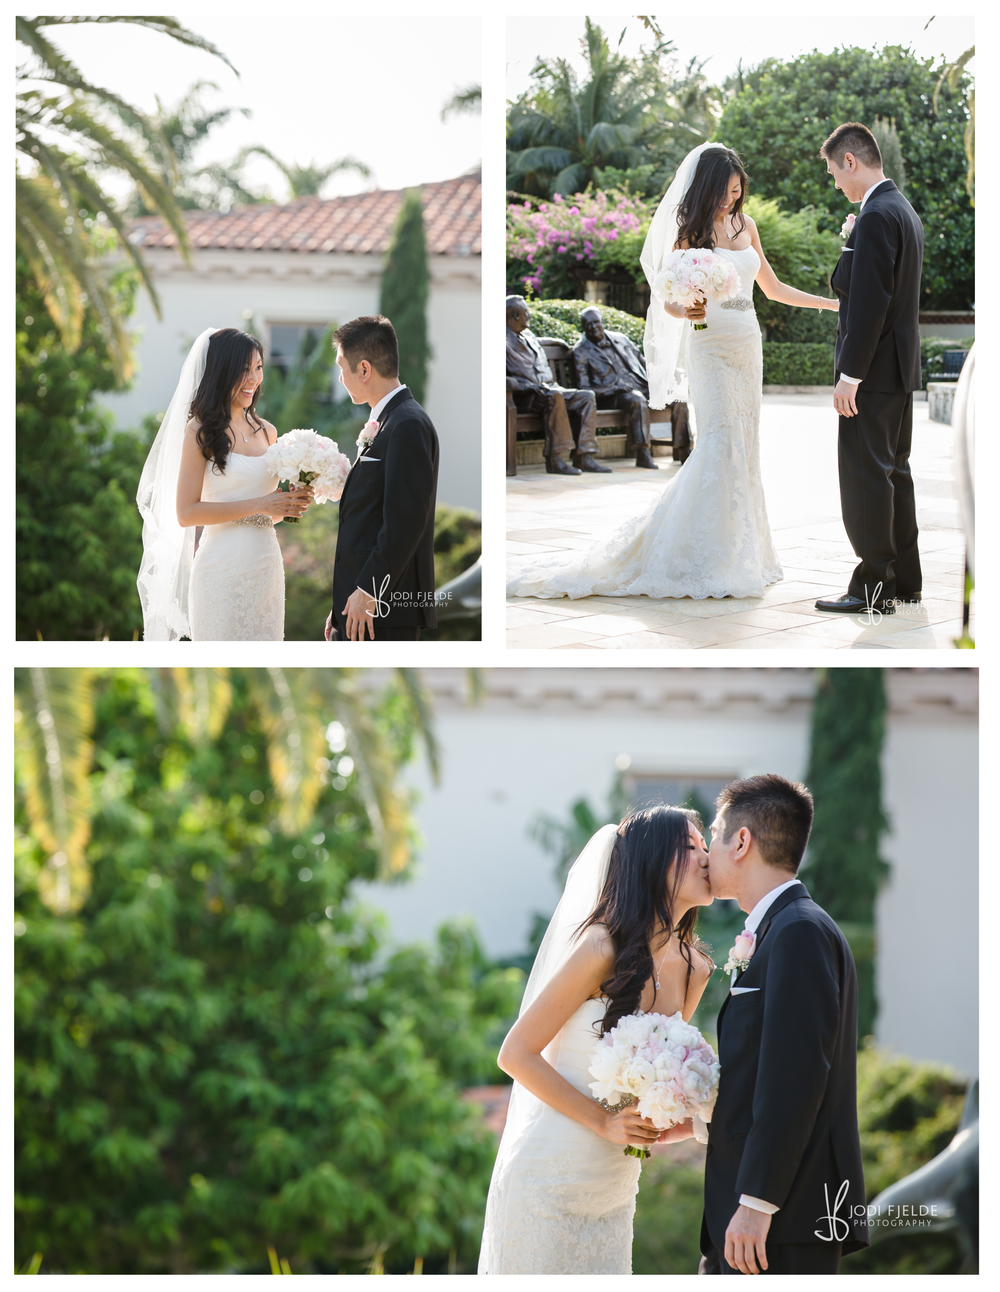 Lake_Pavilion_Wedding_West_Palm_Beach_Jodi_Fjelde_Photography_Betty_Alex_Sociaety_Of_Four _Arts_4.jpg